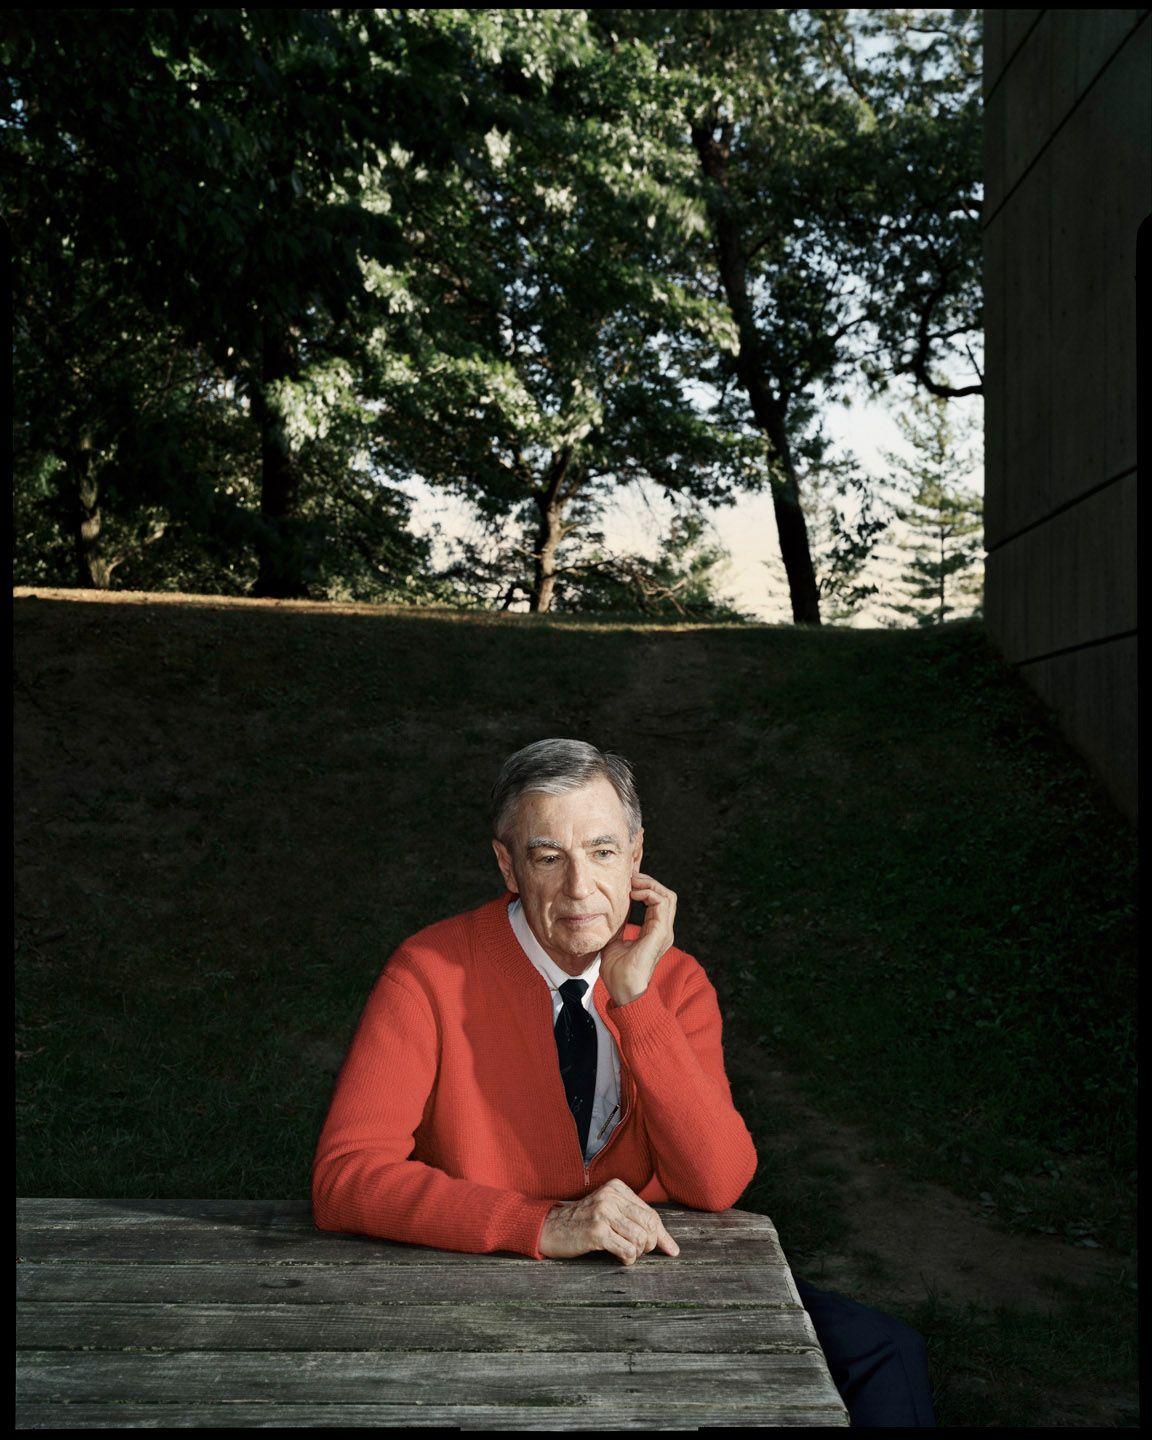 Fred Rogers Pittsburgh Pa Esquire Magazine C Dan Winters Photography Free Crochet The Neighbourhood Dan Winters Photography